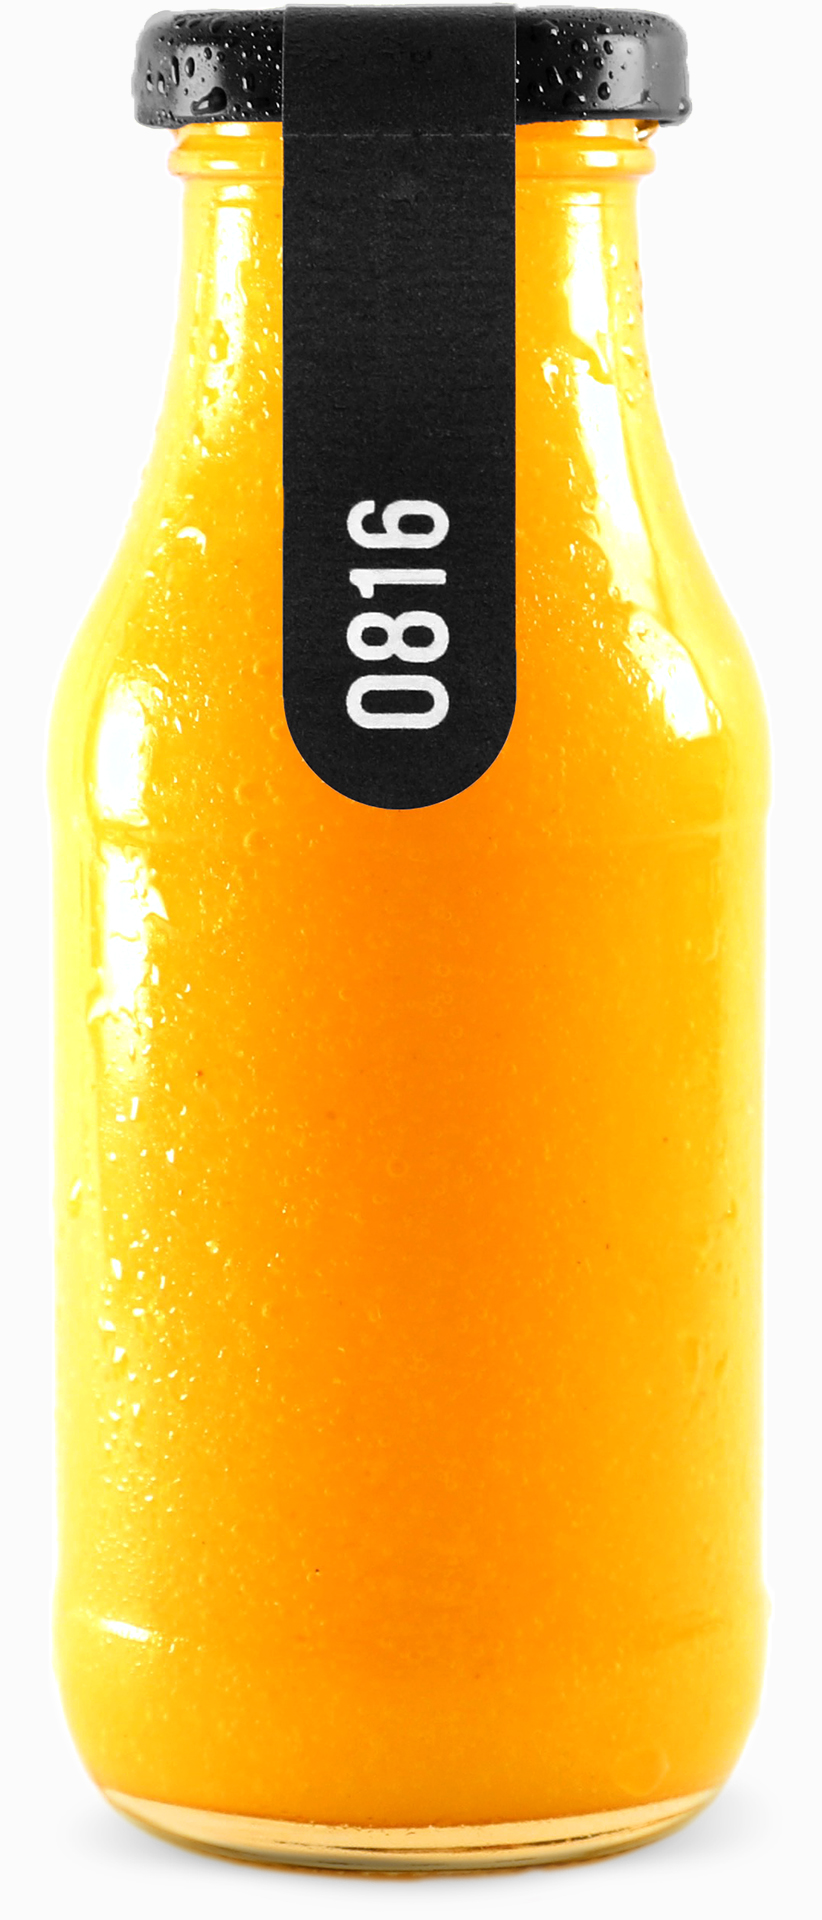 0816 – Bio Mango Smoothie in 270ml Glasflasche.